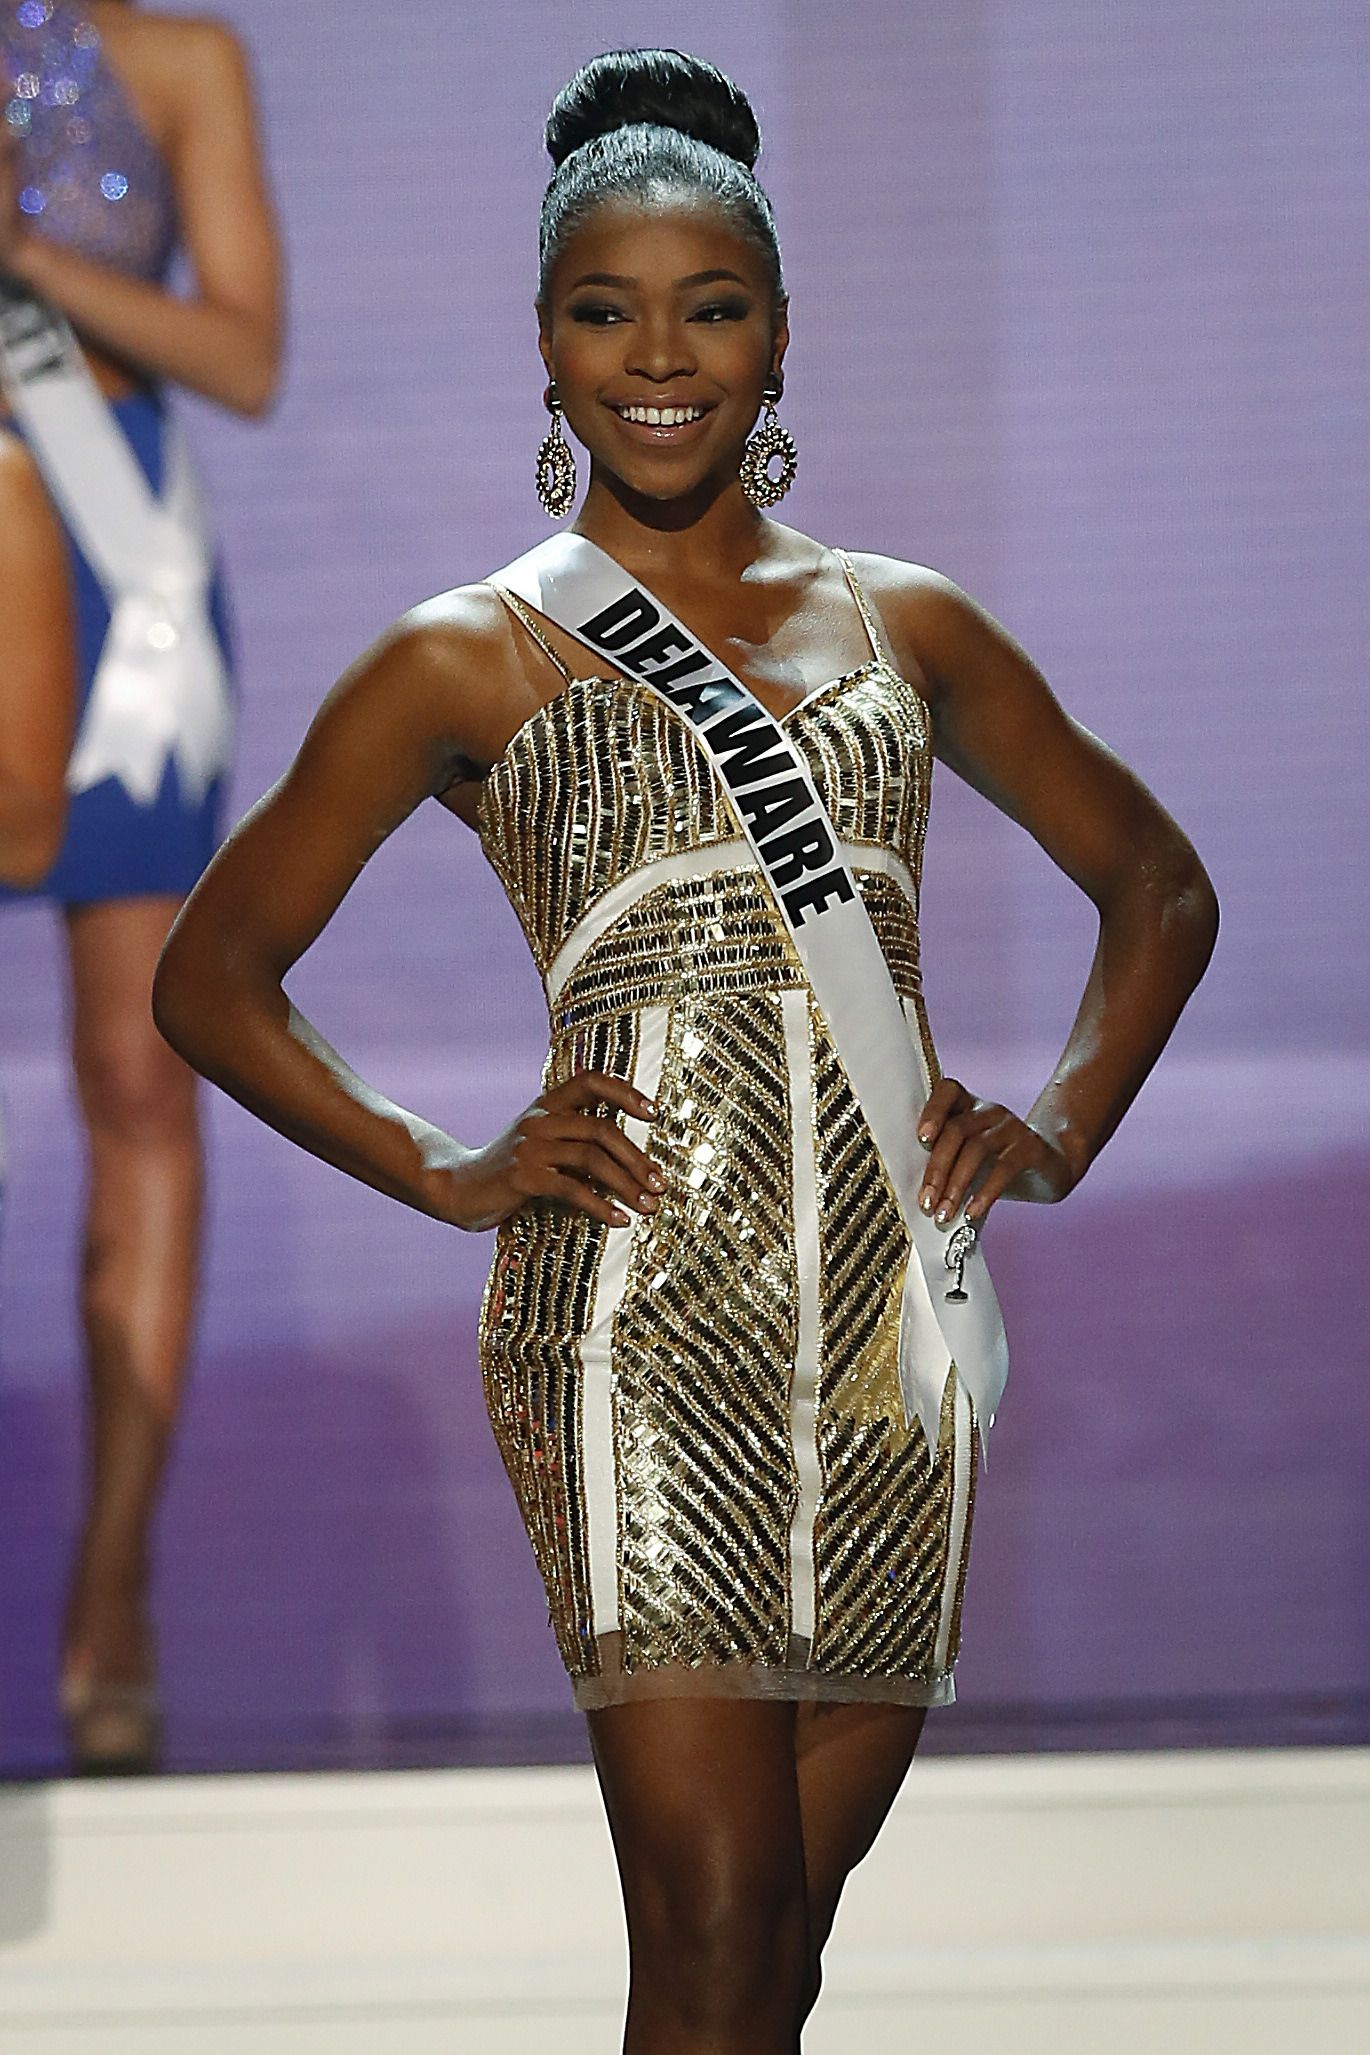 Miss Delaware in USA Pageant